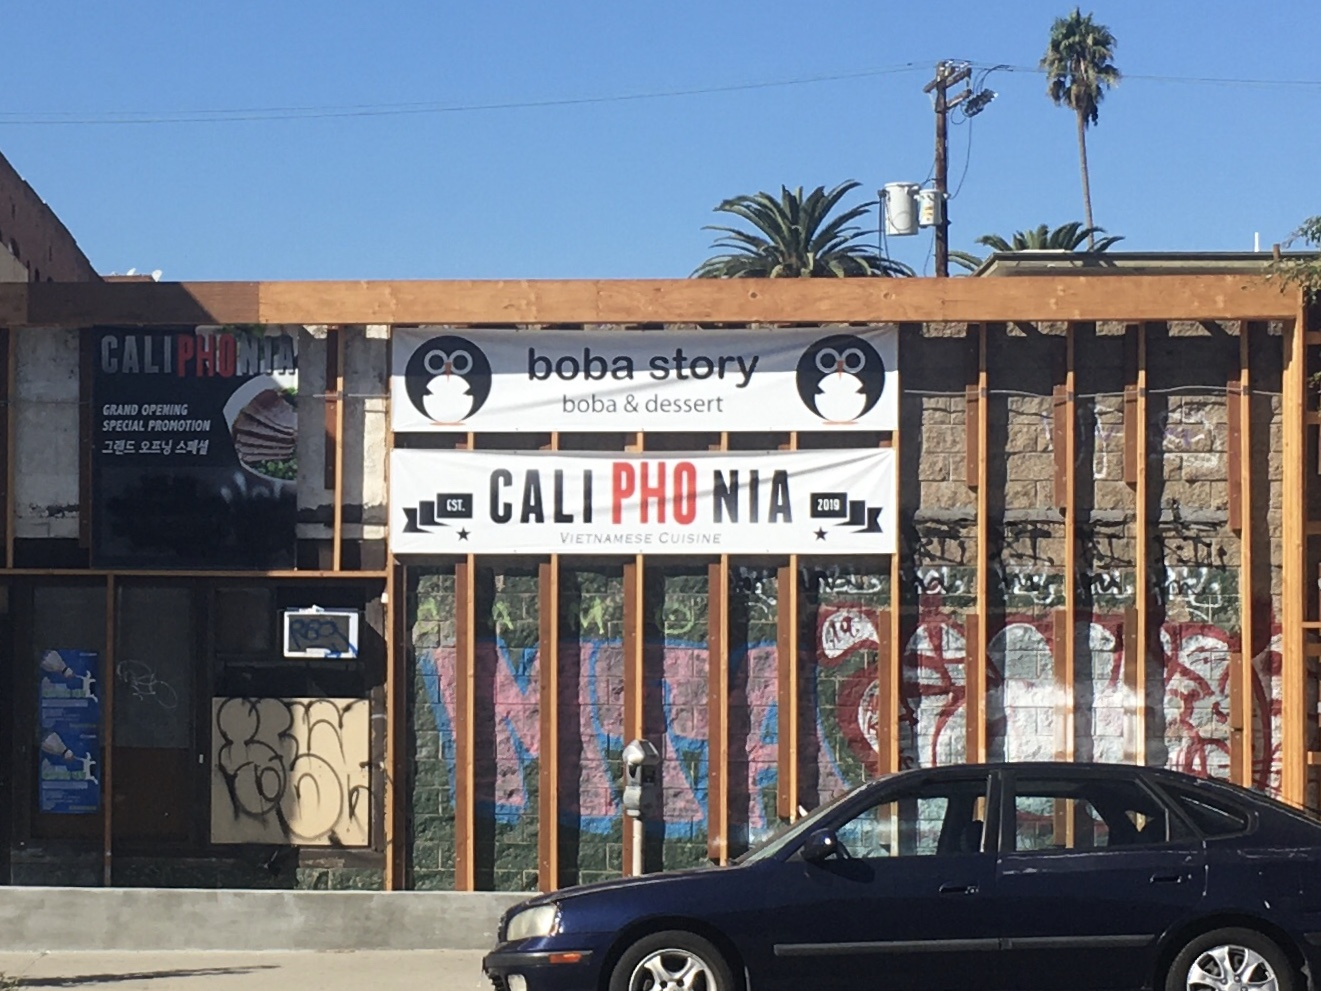 Caliphonia Boba Story in Los Angeles